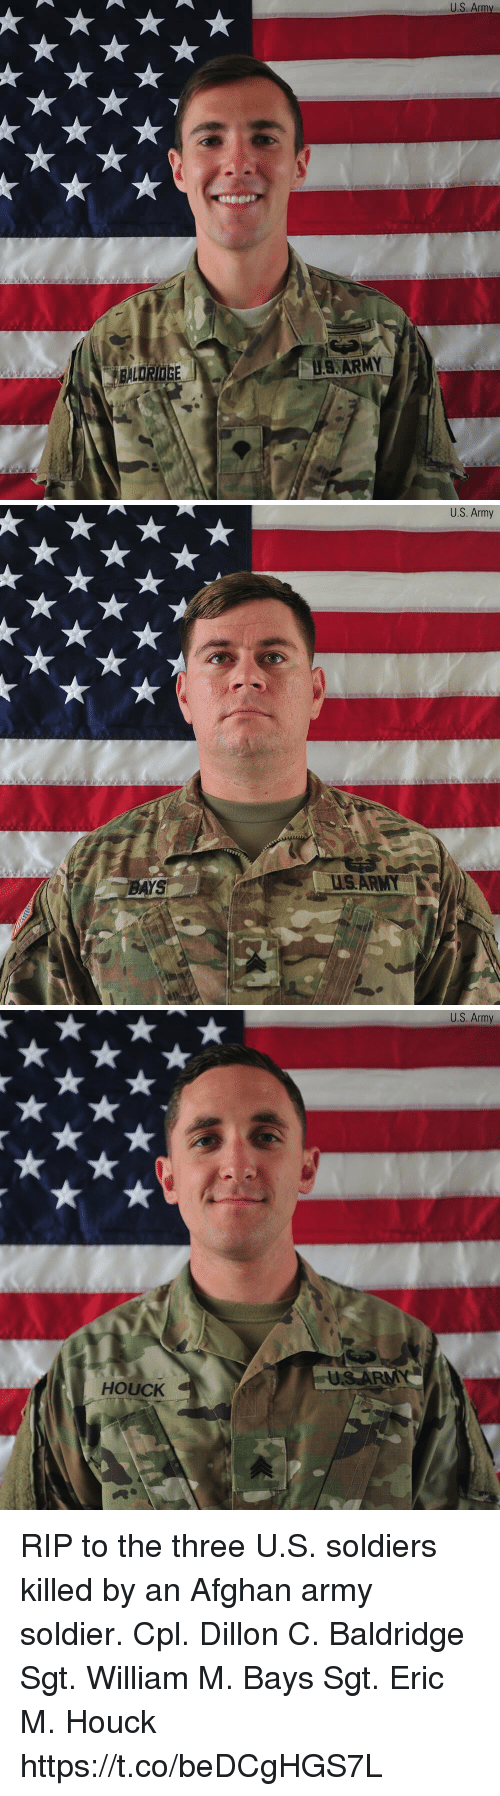 Memes, Soldiers, and Army: US Army  BALDRIDGE  US, ARMY   AYS  U.S. Army   HOUCK  US Army RIP to the three U.S. soldiers killed by an Afghan army soldier.  Cpl. Dillon C. Baldridge  Sgt. William M. Bays  Sgt. Eric M. Houck https://t.co/beDCgHGS7L